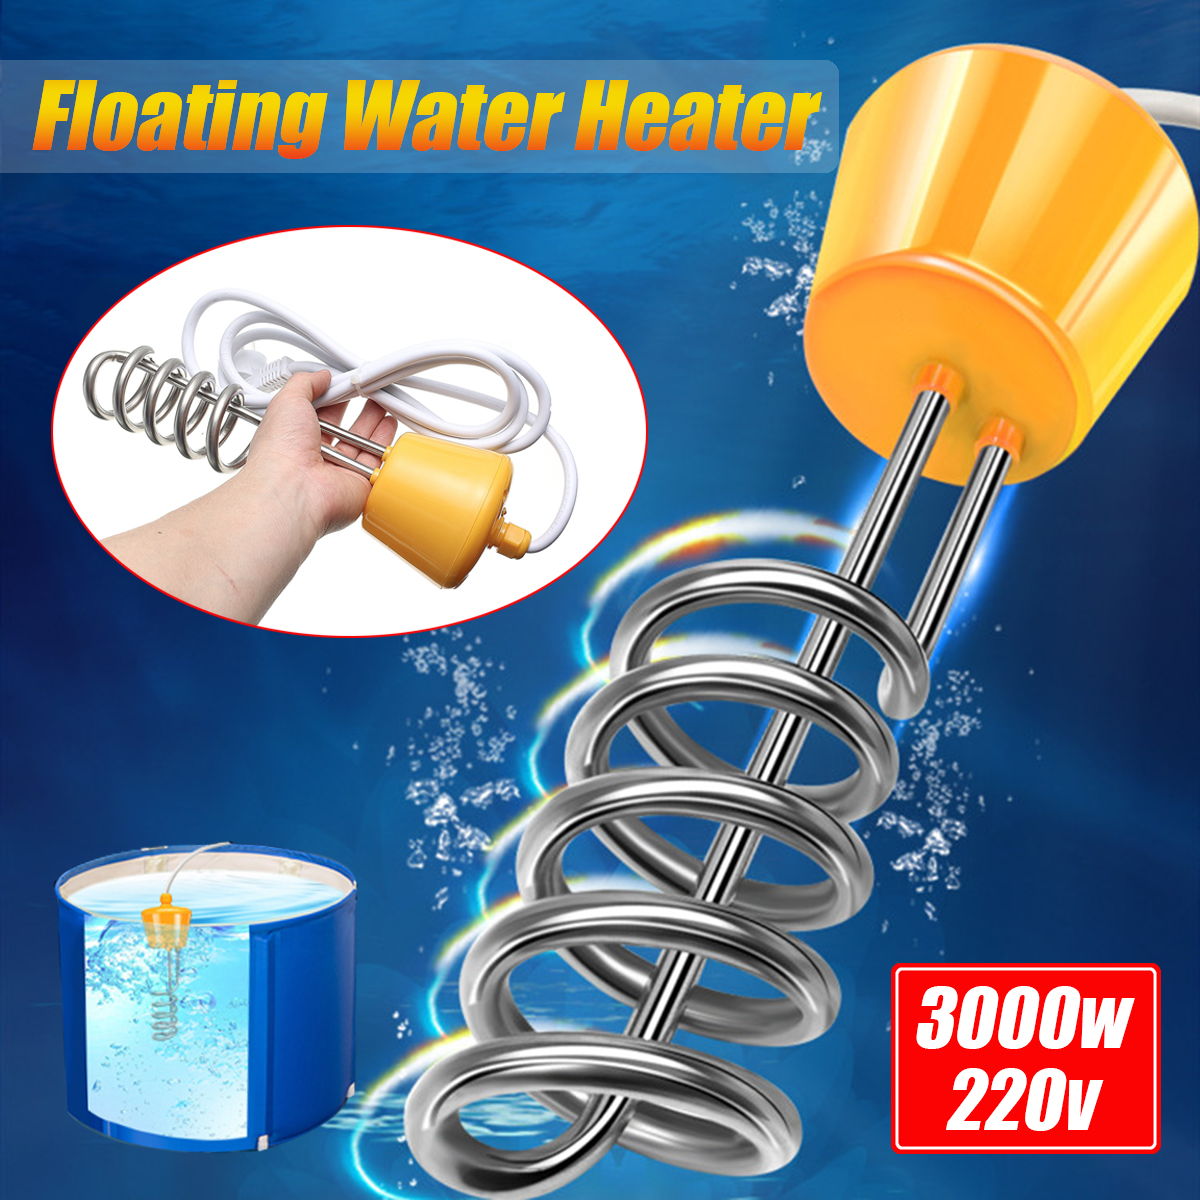 Dasing 3000W Suspension Immersion Electric Water Heater Boiler for in flatable Tub Pool UK Plug